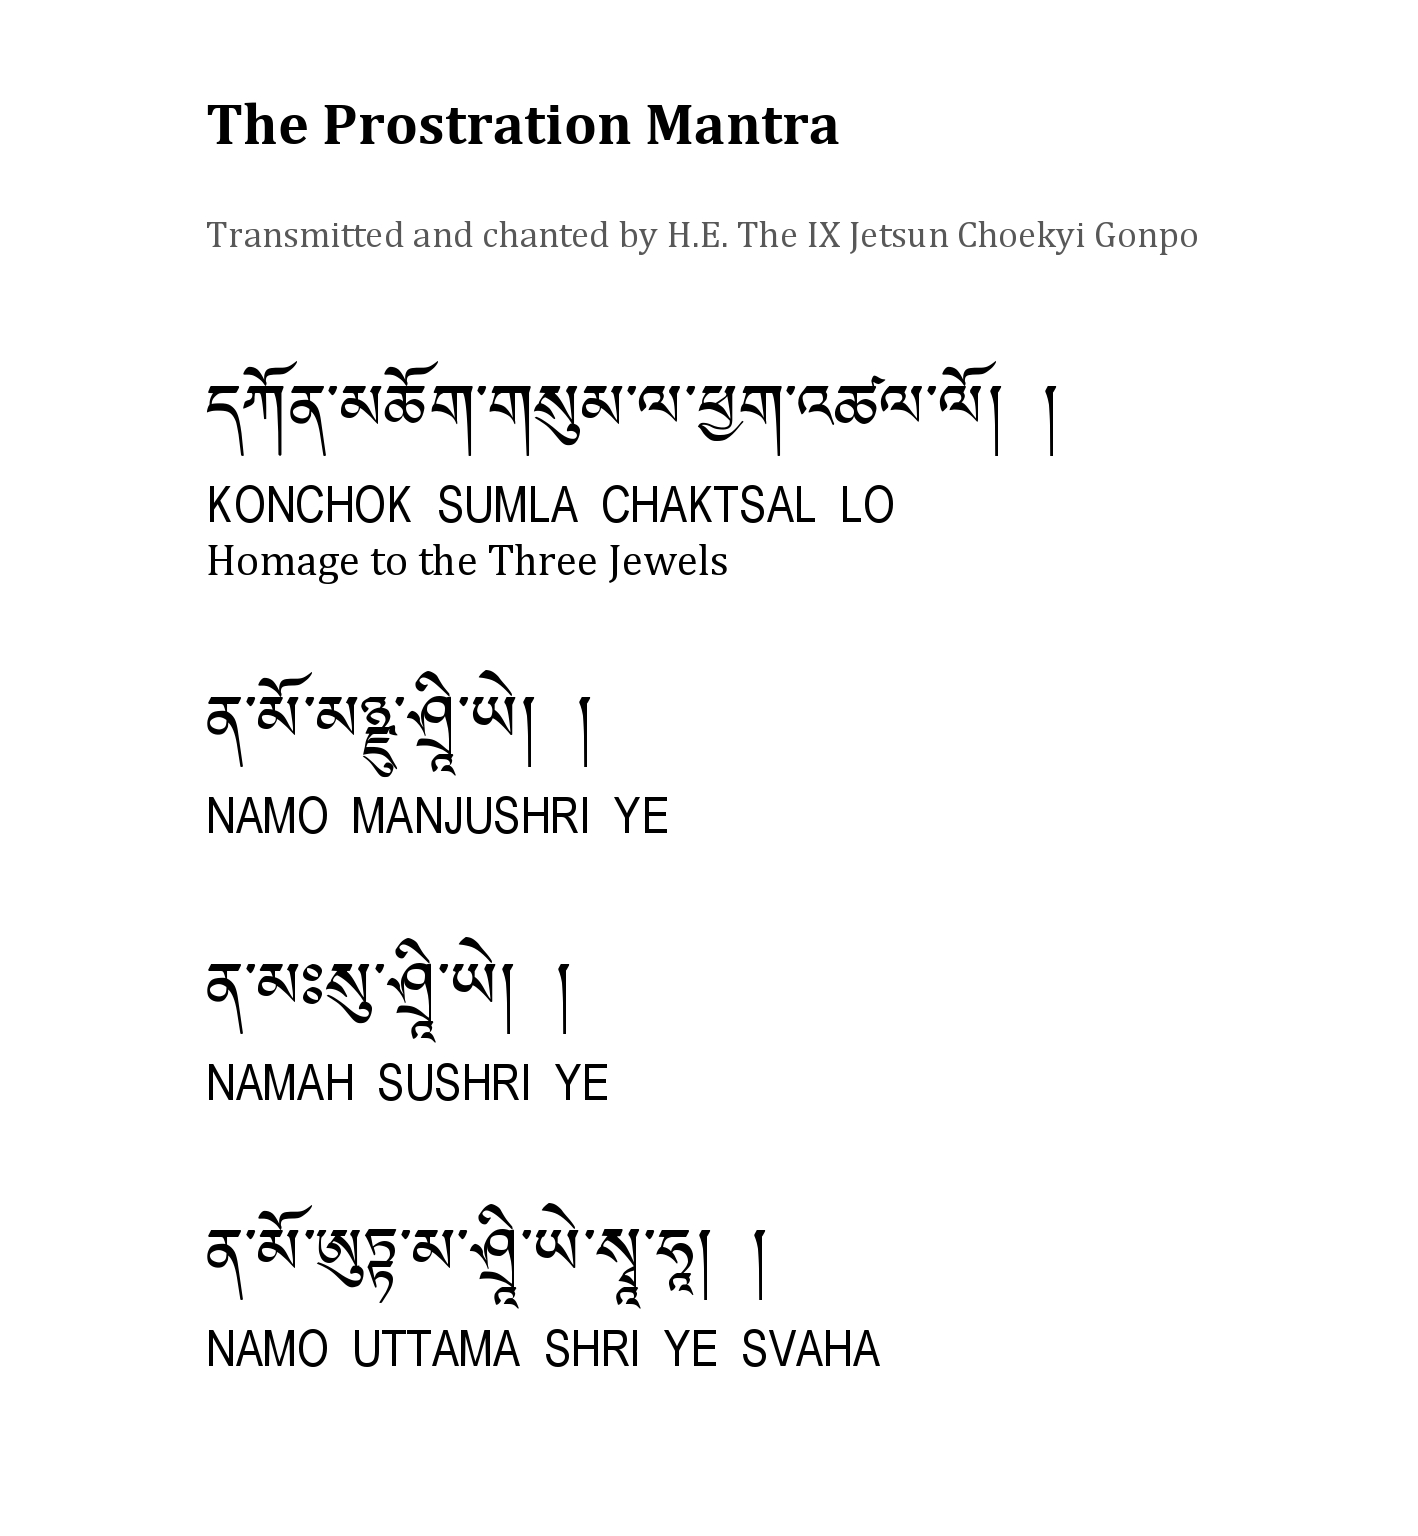 The Prostration Mantra by Choekyi Gonpo IX